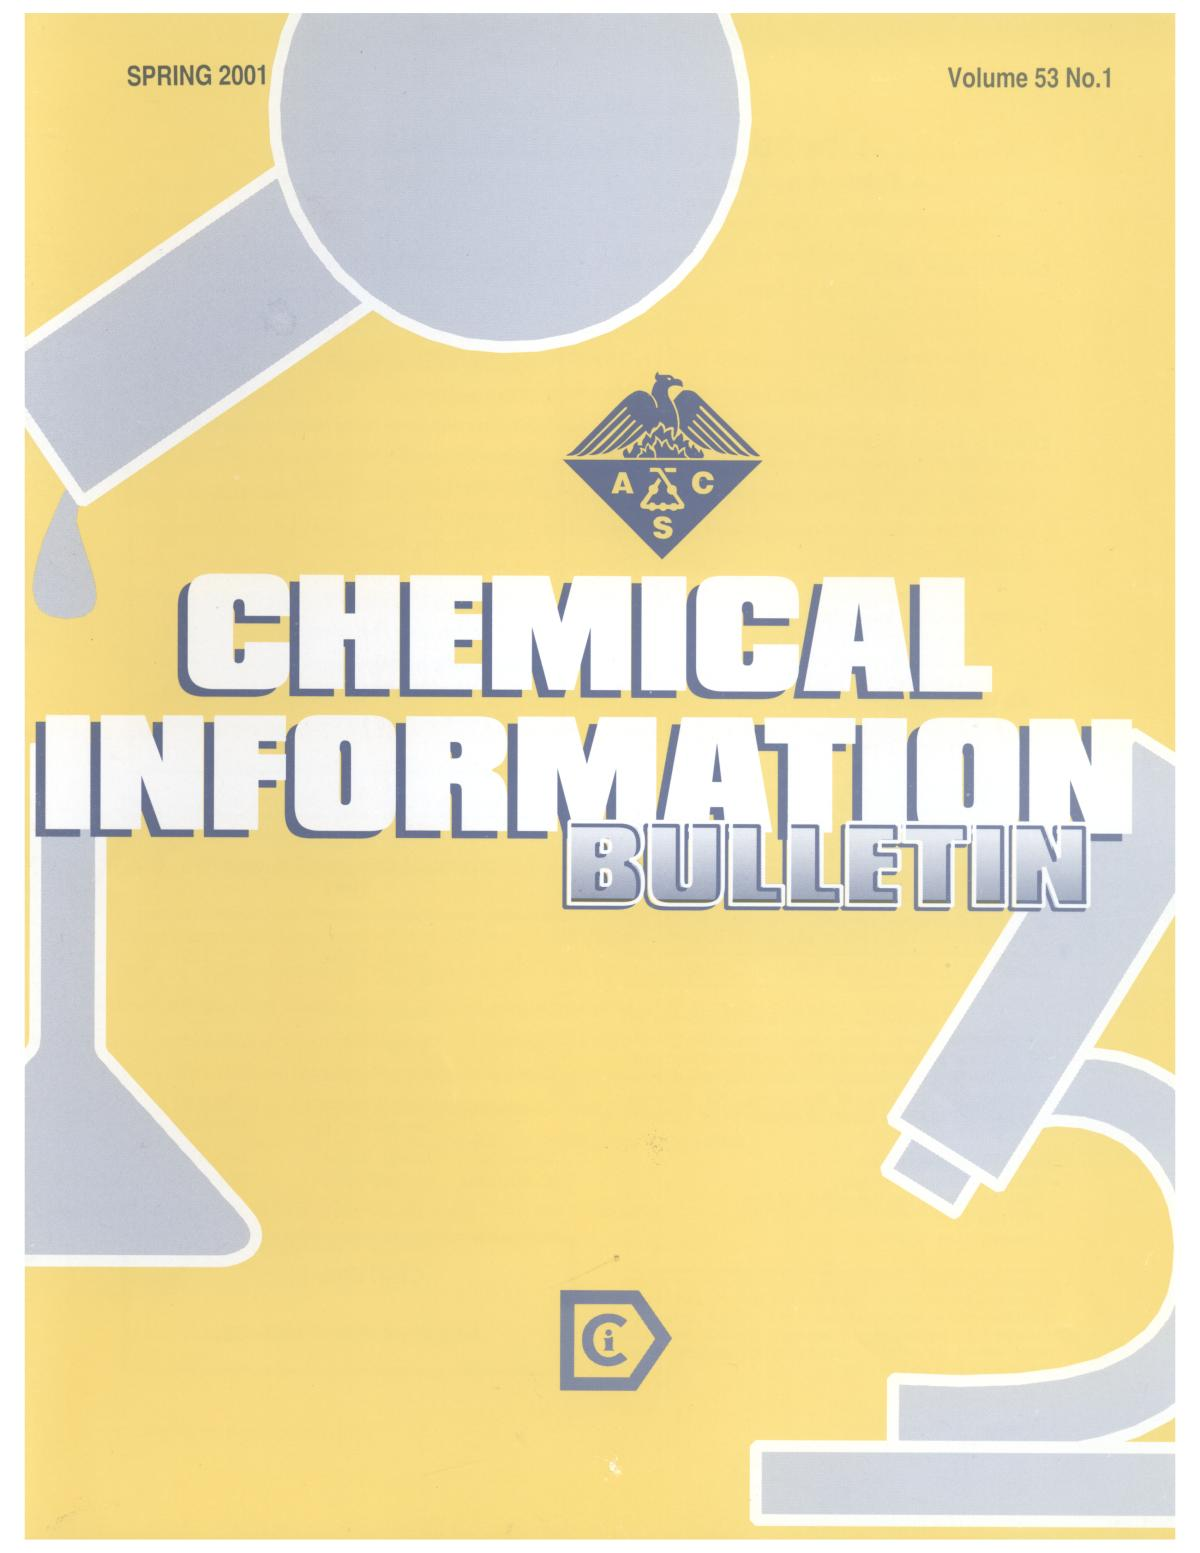 Chemical Information Bulletin, Volume 53 Number 1, Spring 2001                                                                                                      Front Cover